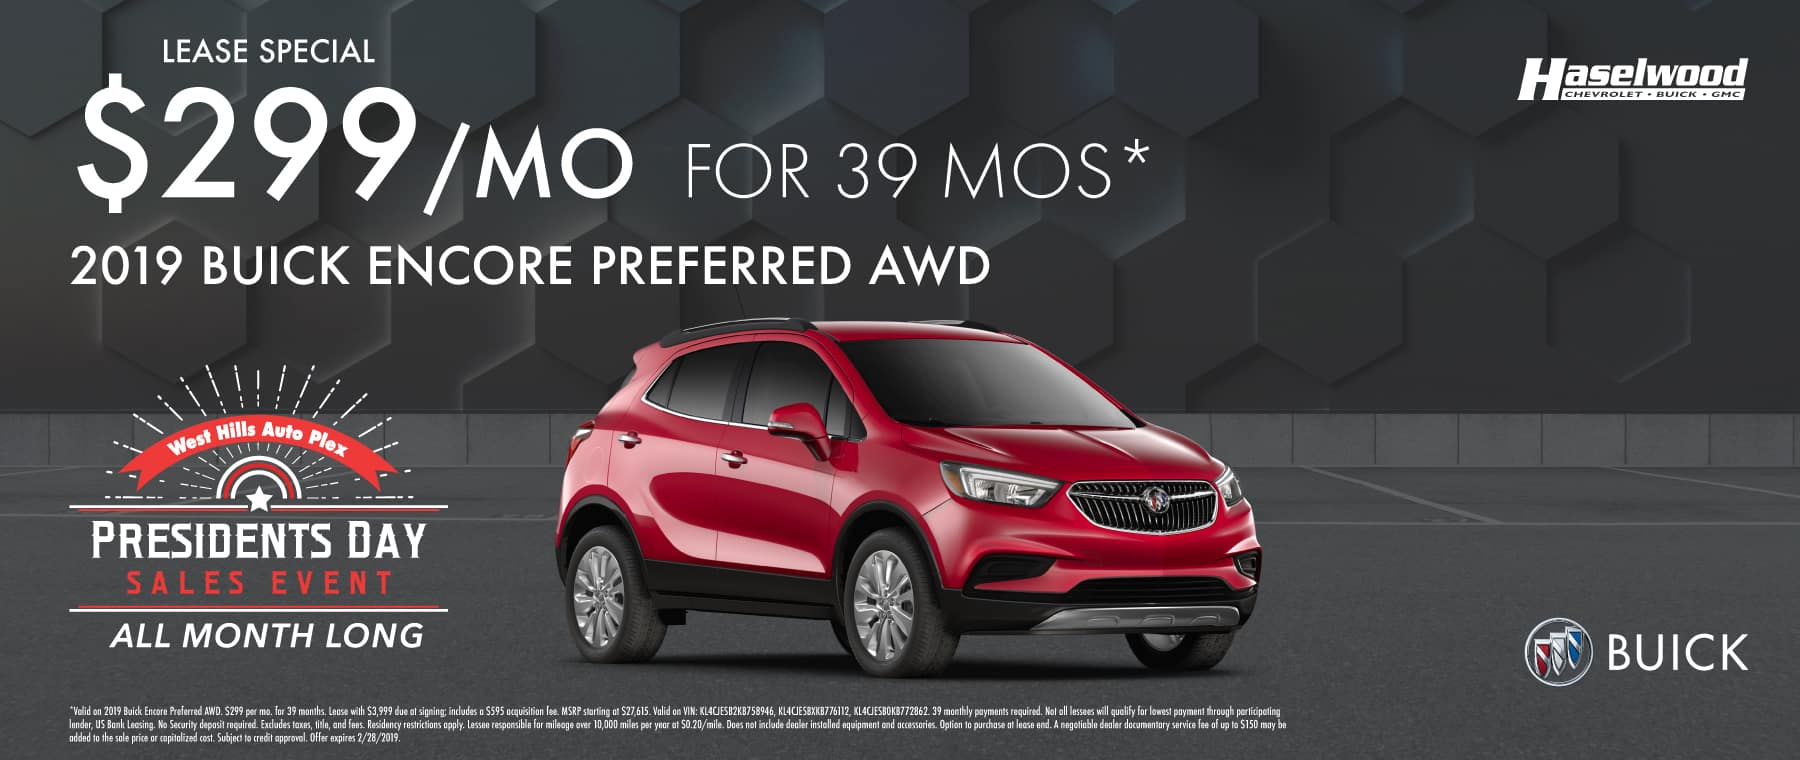 2019 Buick Encore Preferred AWD Lease Special $299/mo. for 39 mos.*  *Valid on 2019 Buick Encore Preferred AWD. $299 per mo. for 39 months. Lease with $3,999 due at signing; includes a $595 acquisition fee. MSRP starting at $27,615. Valid on VIN: KL4CJESB2KB758946, KL4CJESBXKB776112, KL4CJESB0KB772862. 39 monthly payments required. Not all lessees will qualify for lowest payment through participating lender, US Bank Leasing. No Security deposit required. Excludes taxes, title, and fees. Residency restrictions apply. Lessee responsible for mileage over 10,000 miles per year at $0.20/mile. Does not include dealer installed equipment and accessories. Option to purchase at lease end. A negotiable dealer documentary service fee of up to $150 may be added to the sale price or capitalized cost. Subject to credit approval. Offer expires 2/28/2019.